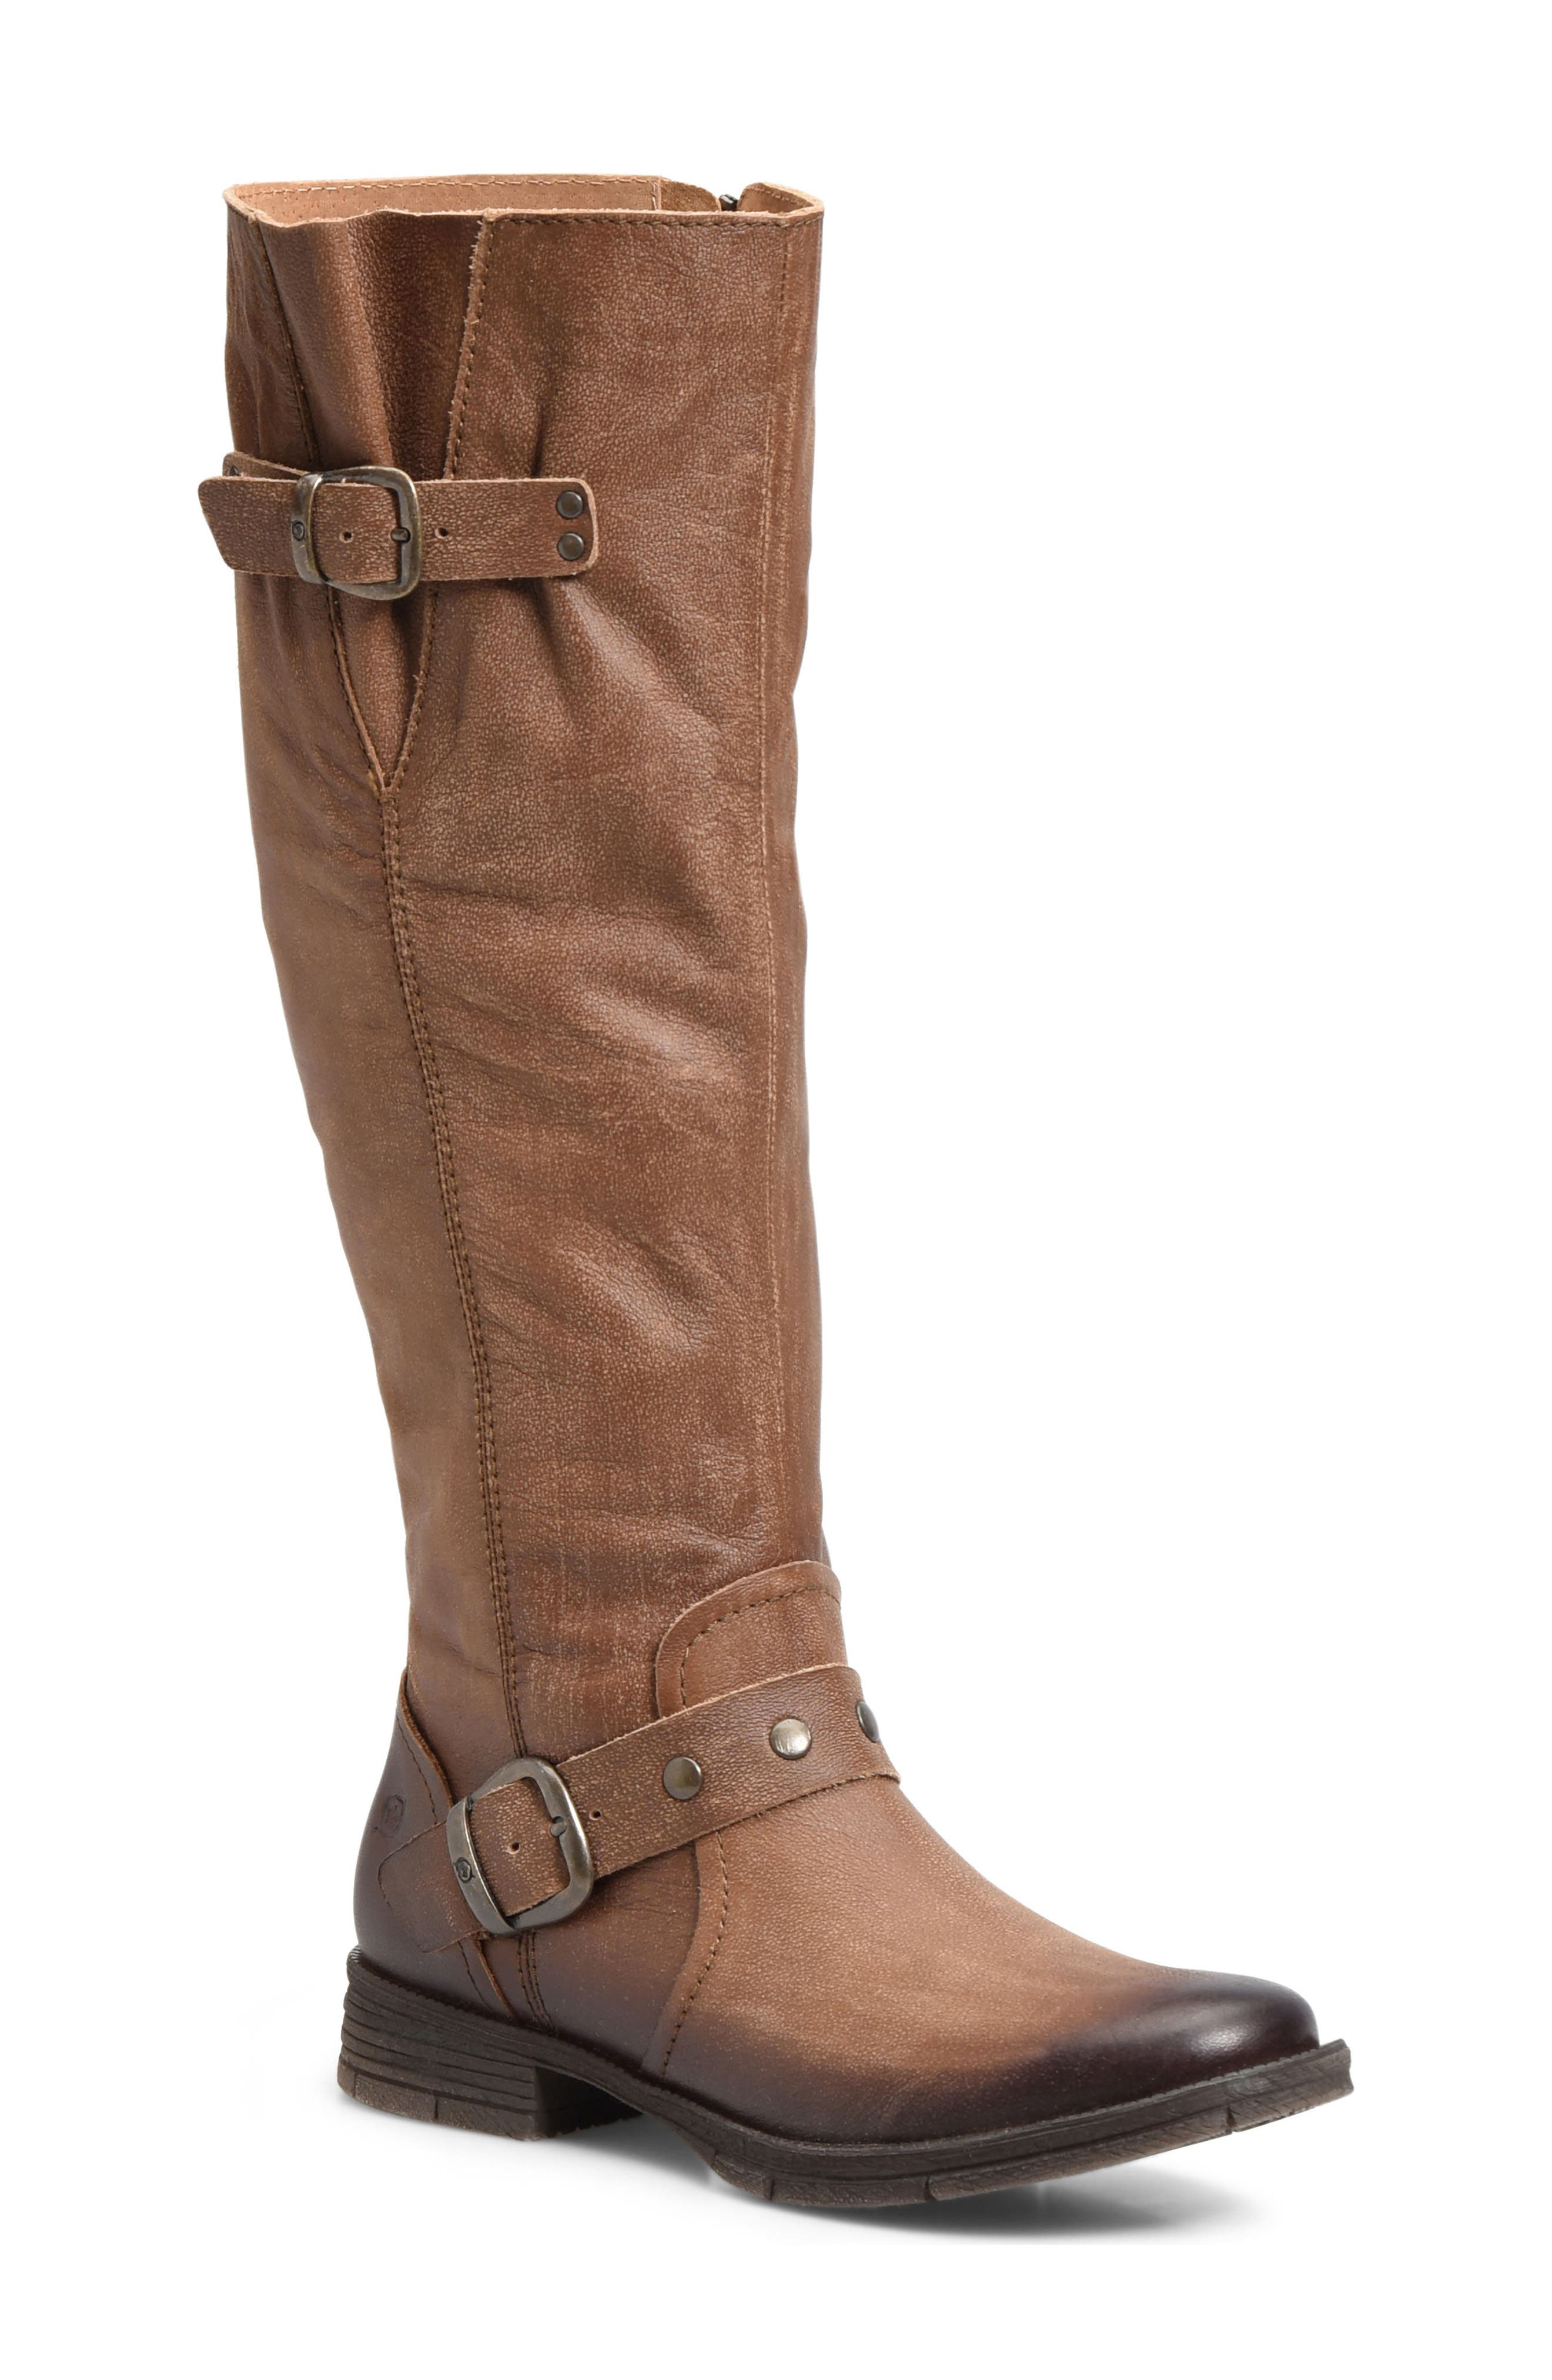 Ashland Knee High Boot,                             Main thumbnail 1, color,                             Brown Leather